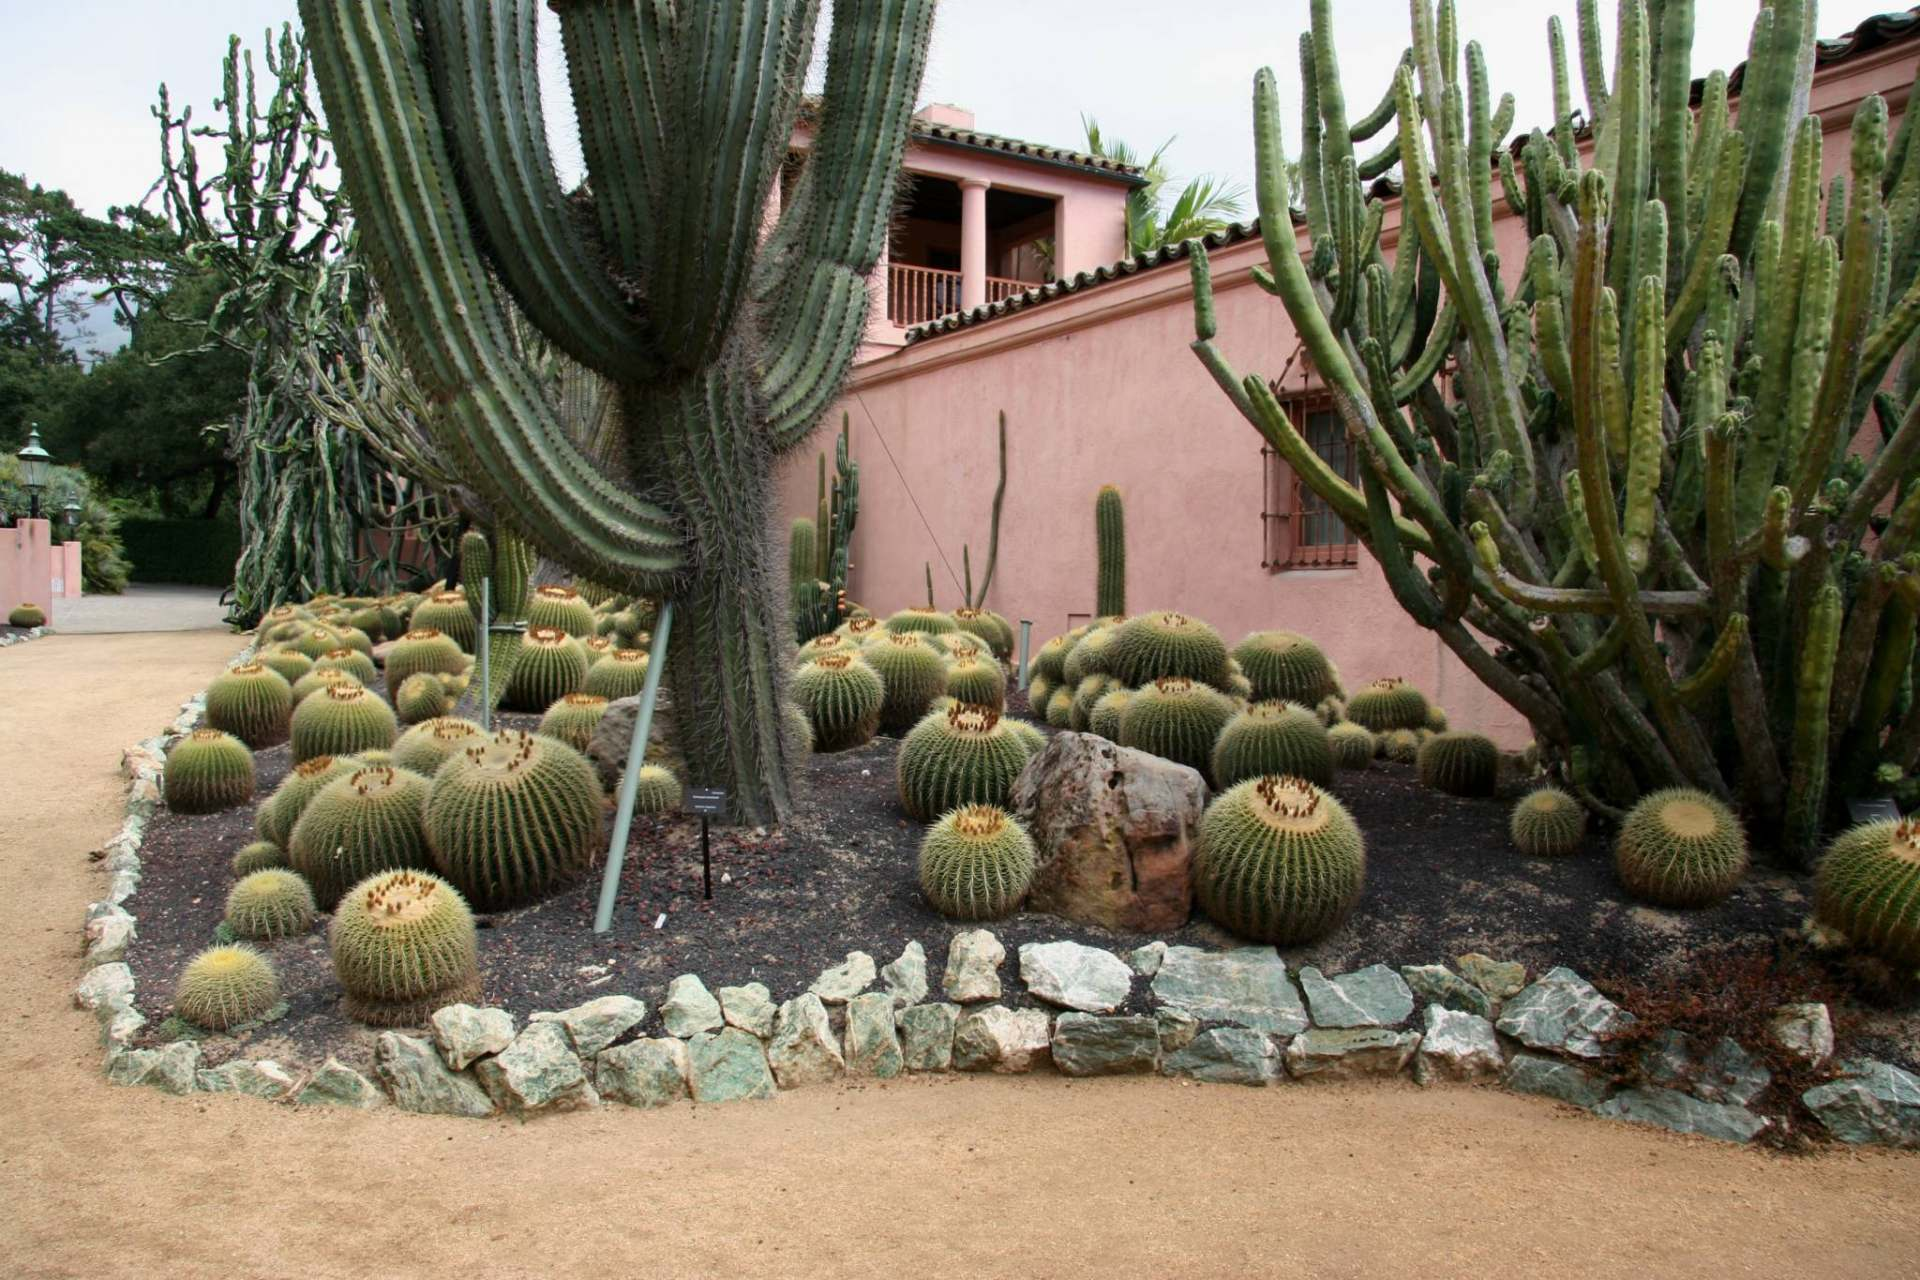 Flickr_-_brewbooks_-_Cacti_and_euphorbia_garden,_Lotusland_(1)